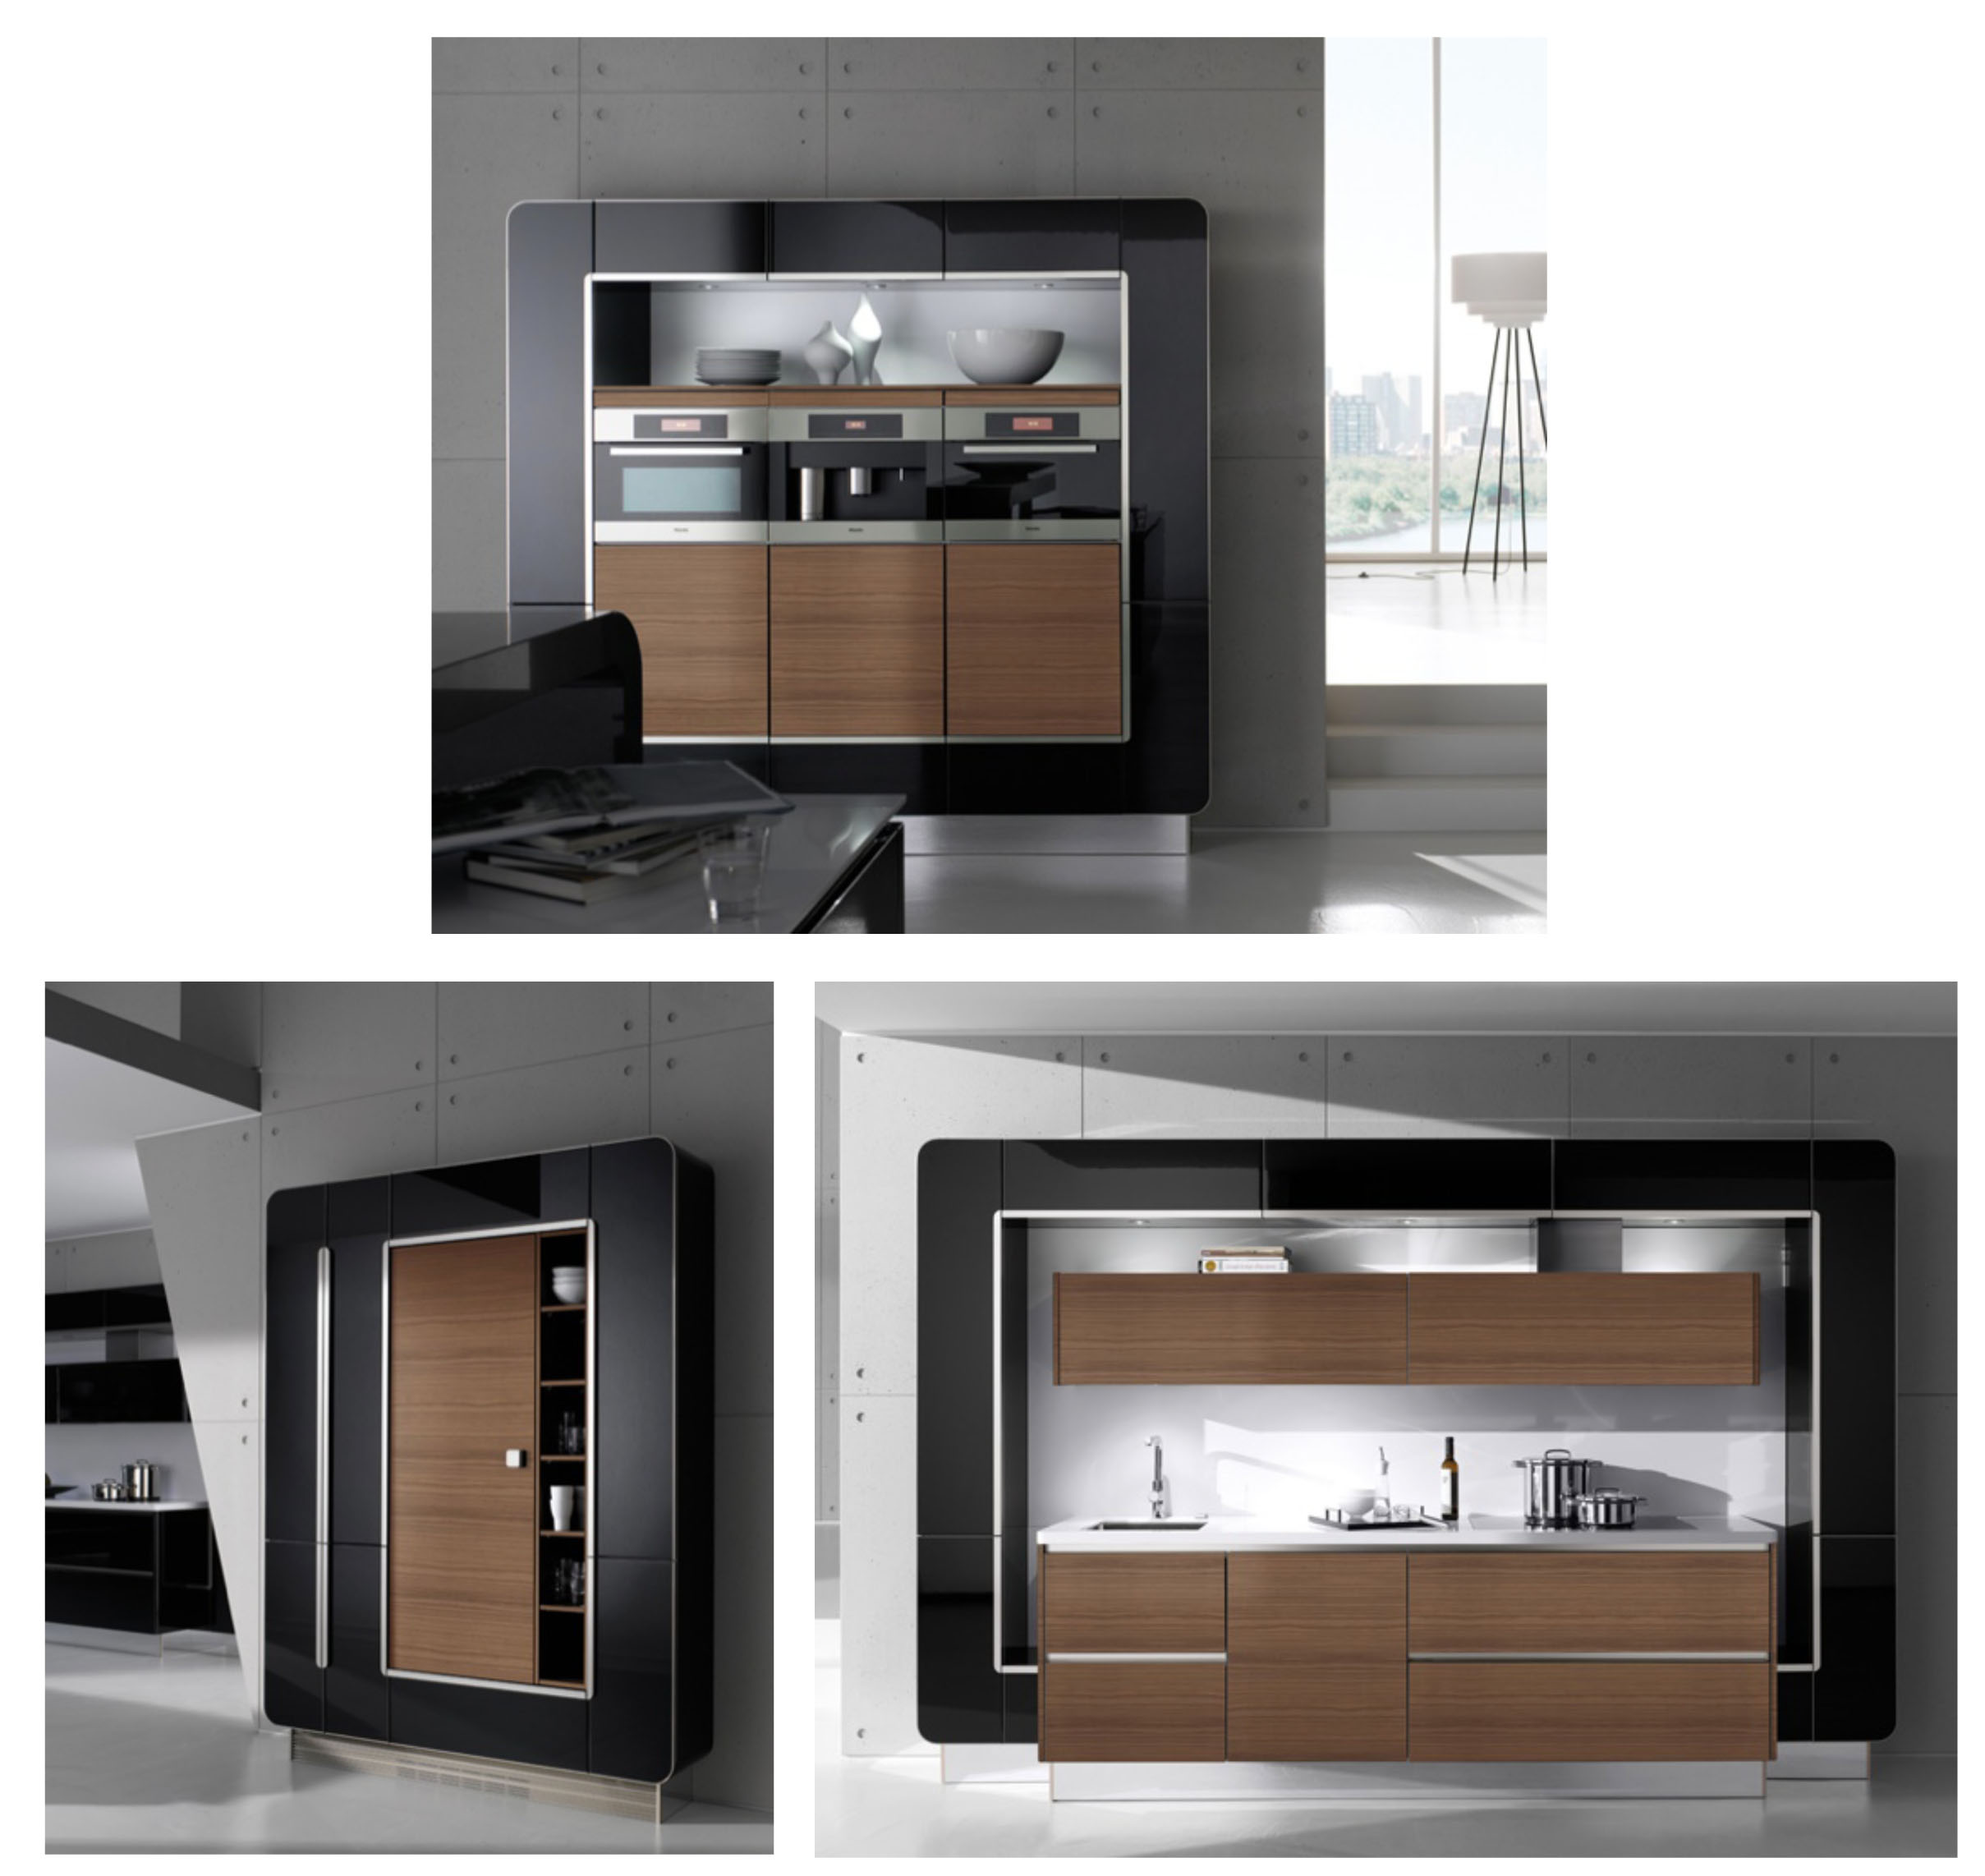 New Modern Kitchens At Neil Lerner: Get More With MODULAR!